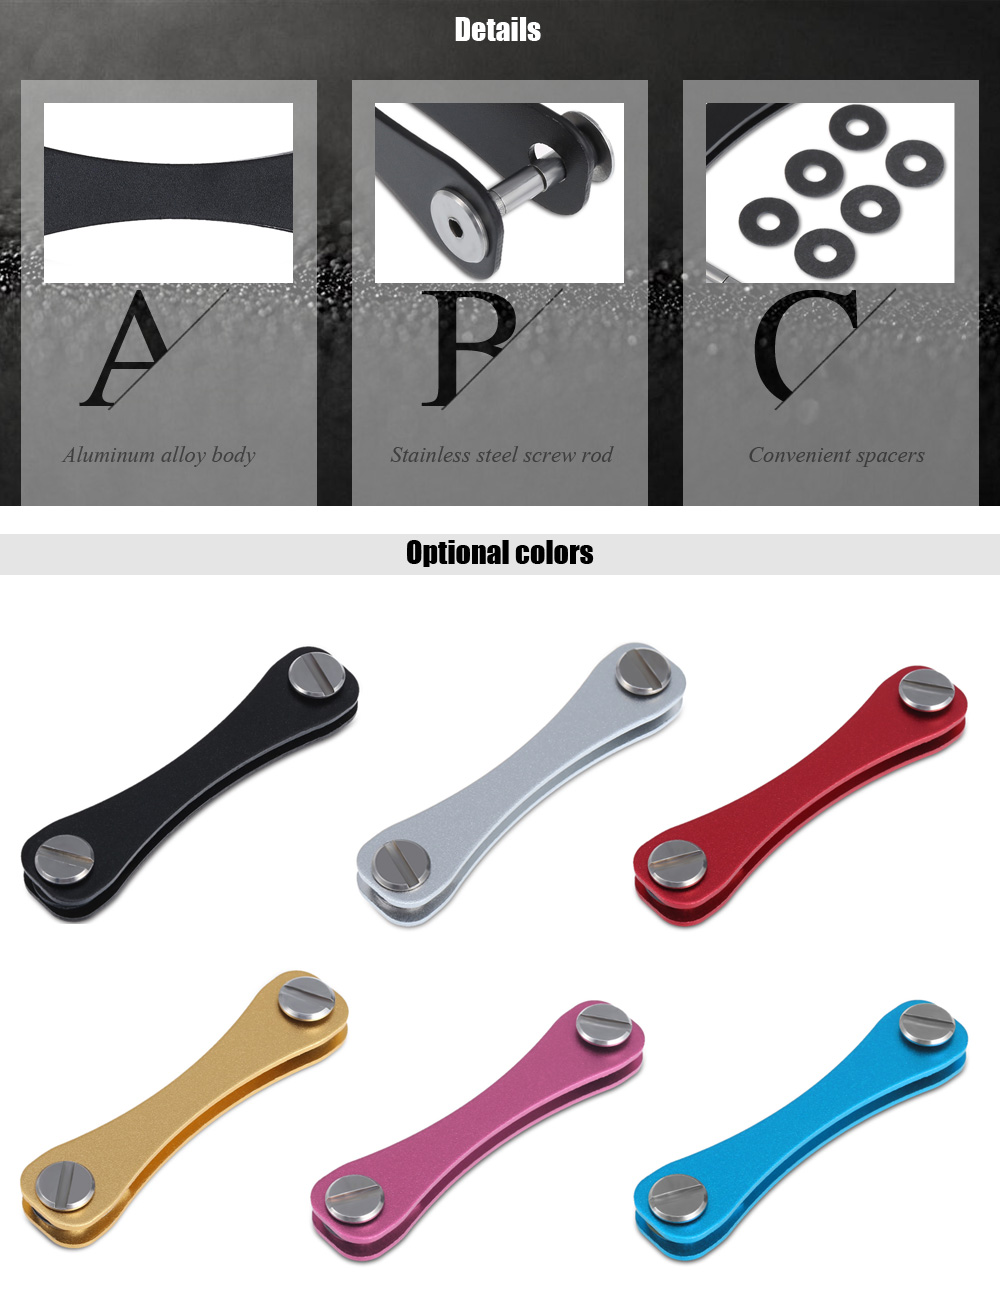 FURA Aluminum Alloy EDC Tool Key Holder Clip with Spacers